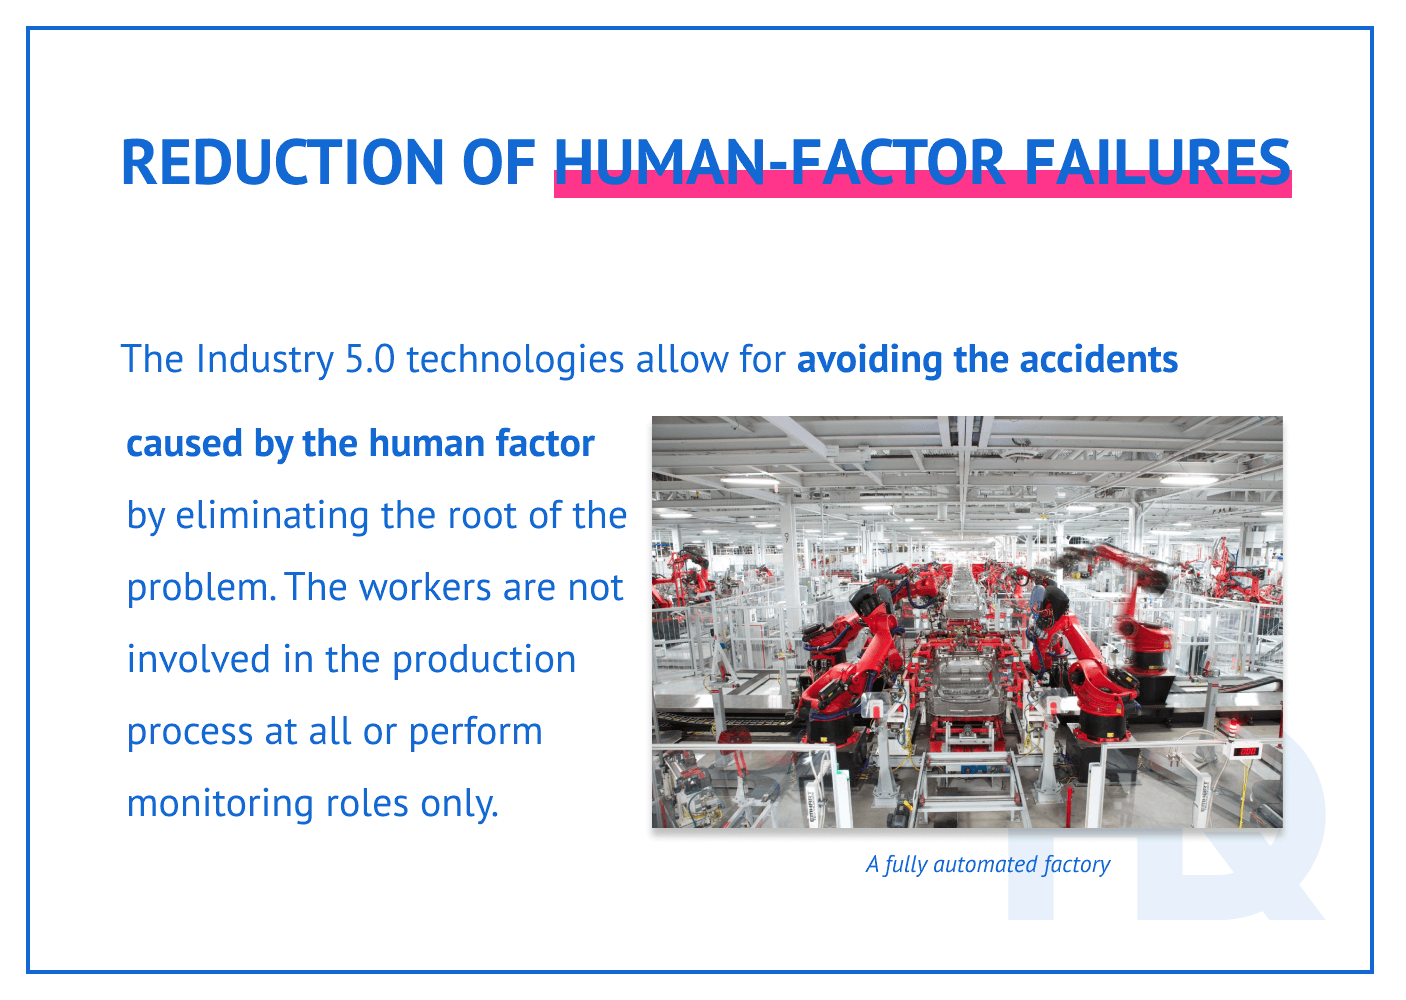 Reduction of human-factor failures in Industry 5.0.